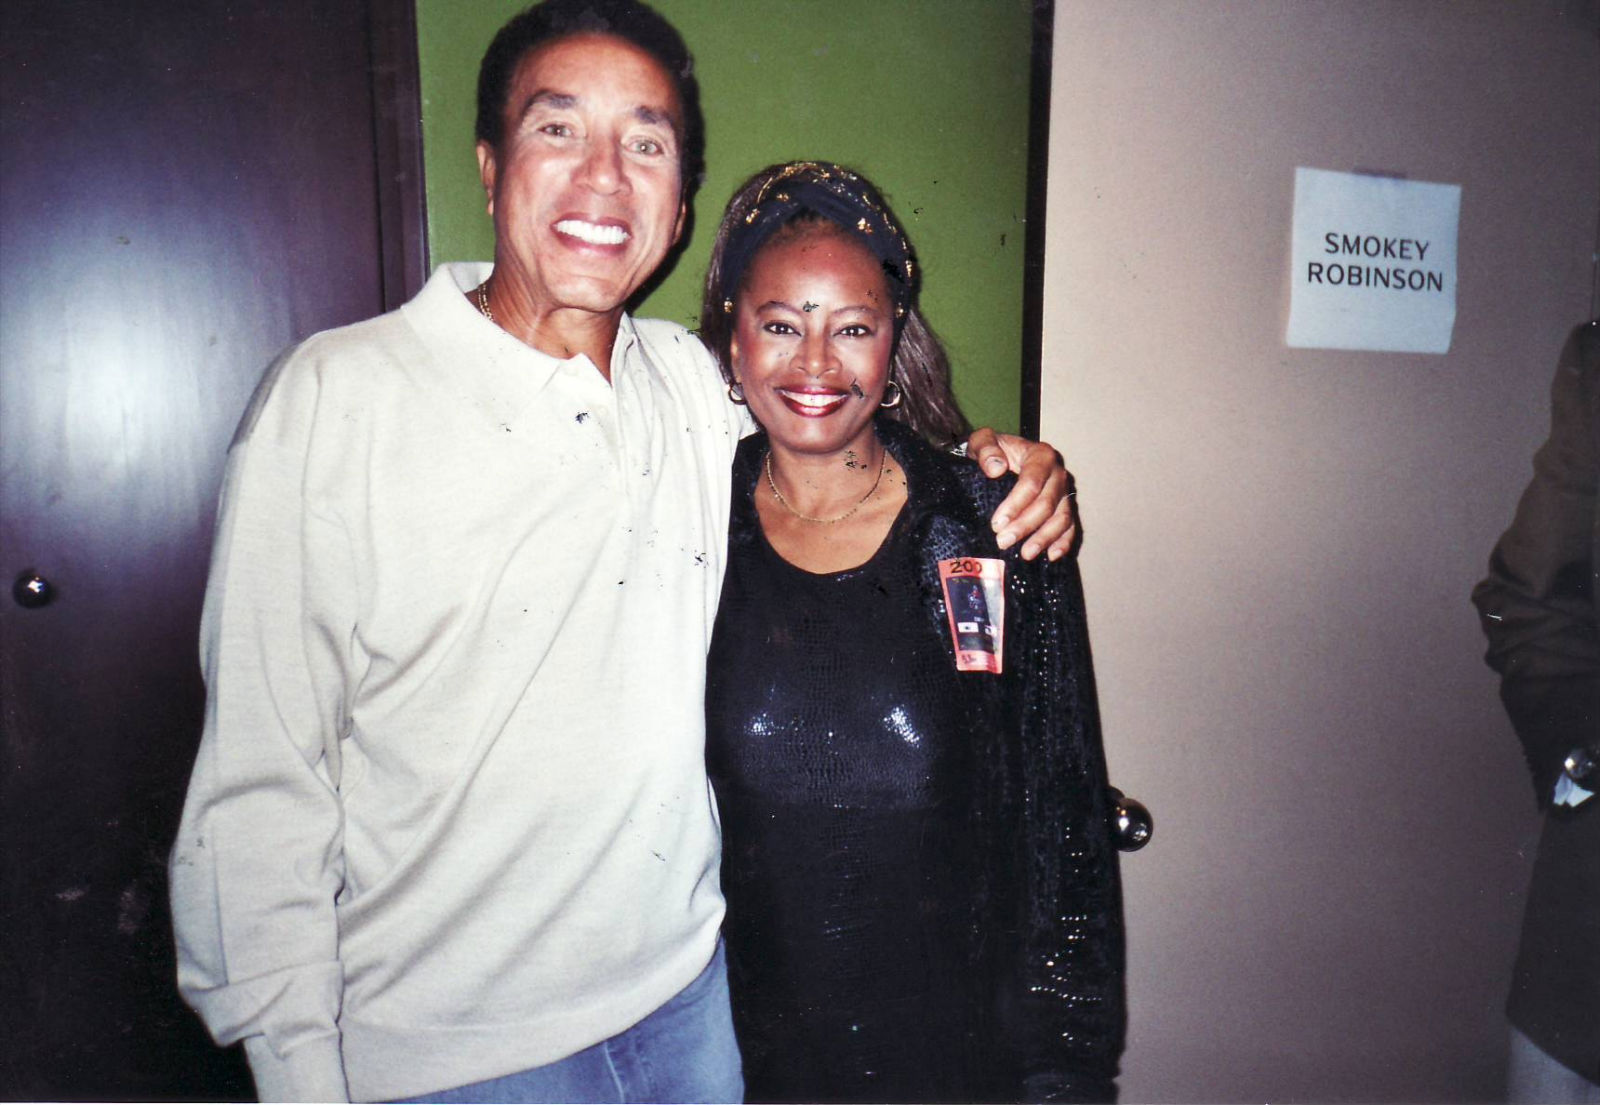 Regina Brown-Ross and Smokey Robinson